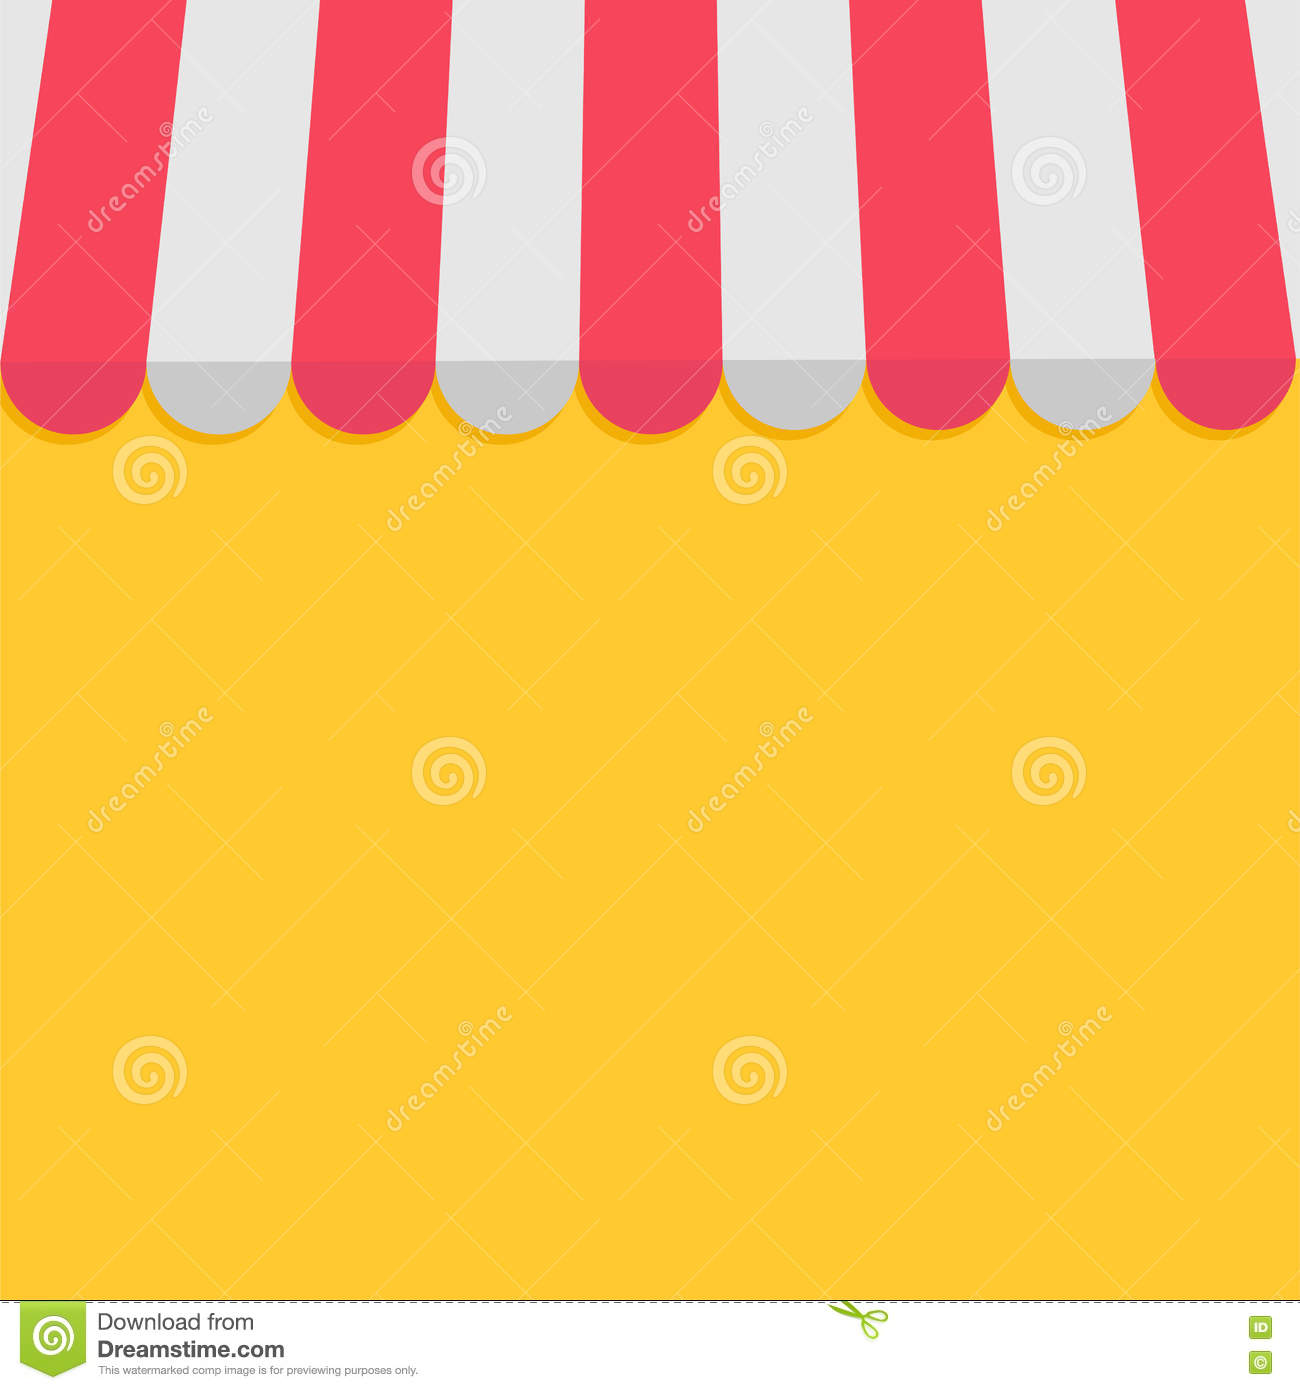 Striped Store Awning For Shop Marketplace Cafe And Restaurant Red White Canopy Roof Flat Design Yellow Background Stock Vector Illustration Of Retail Showcase 77958353